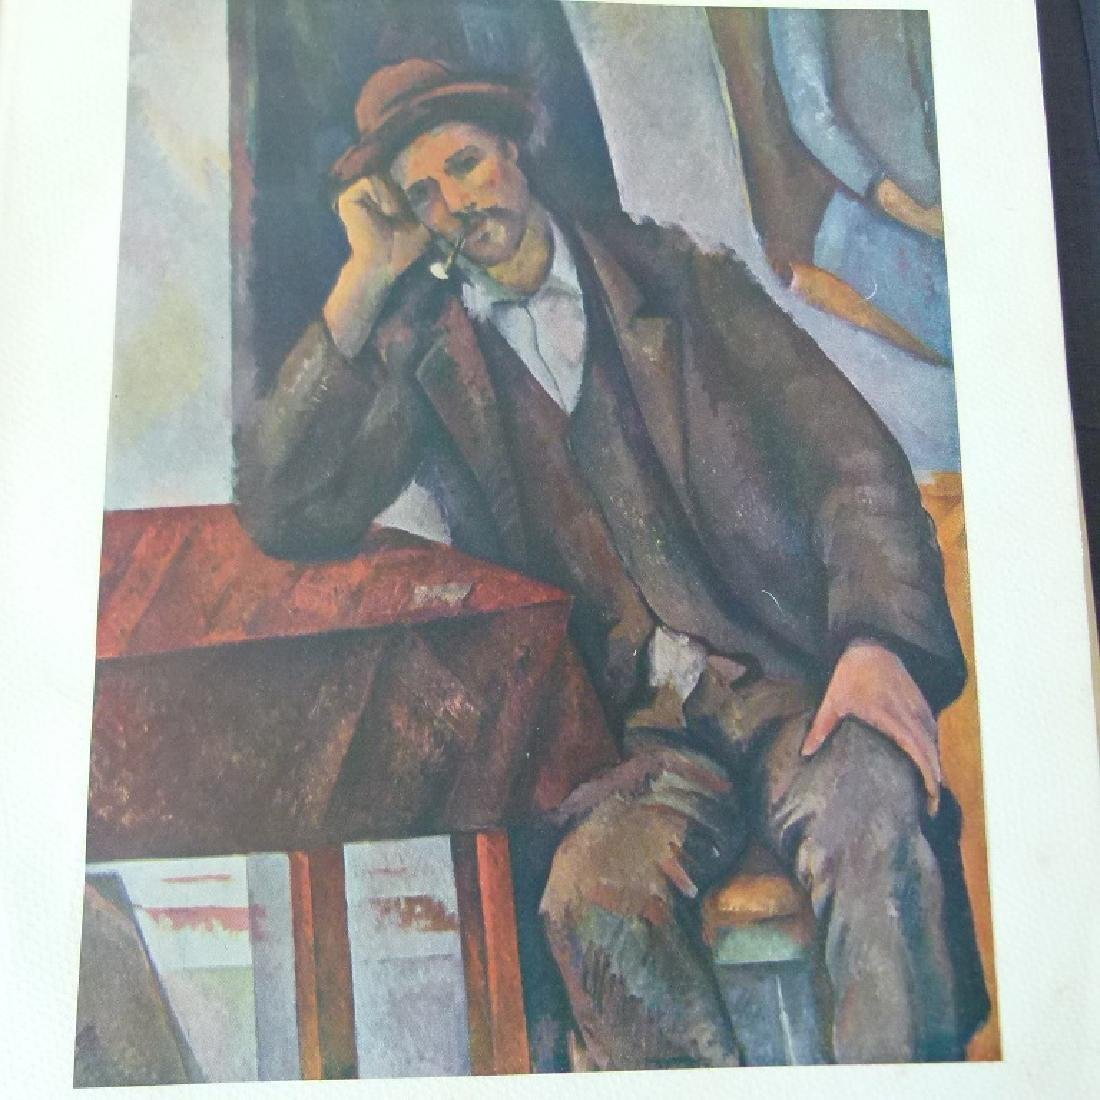 LOT ASSORTED ART REFERENCE INCL. ART EXHIBIT OF 1947 - 7